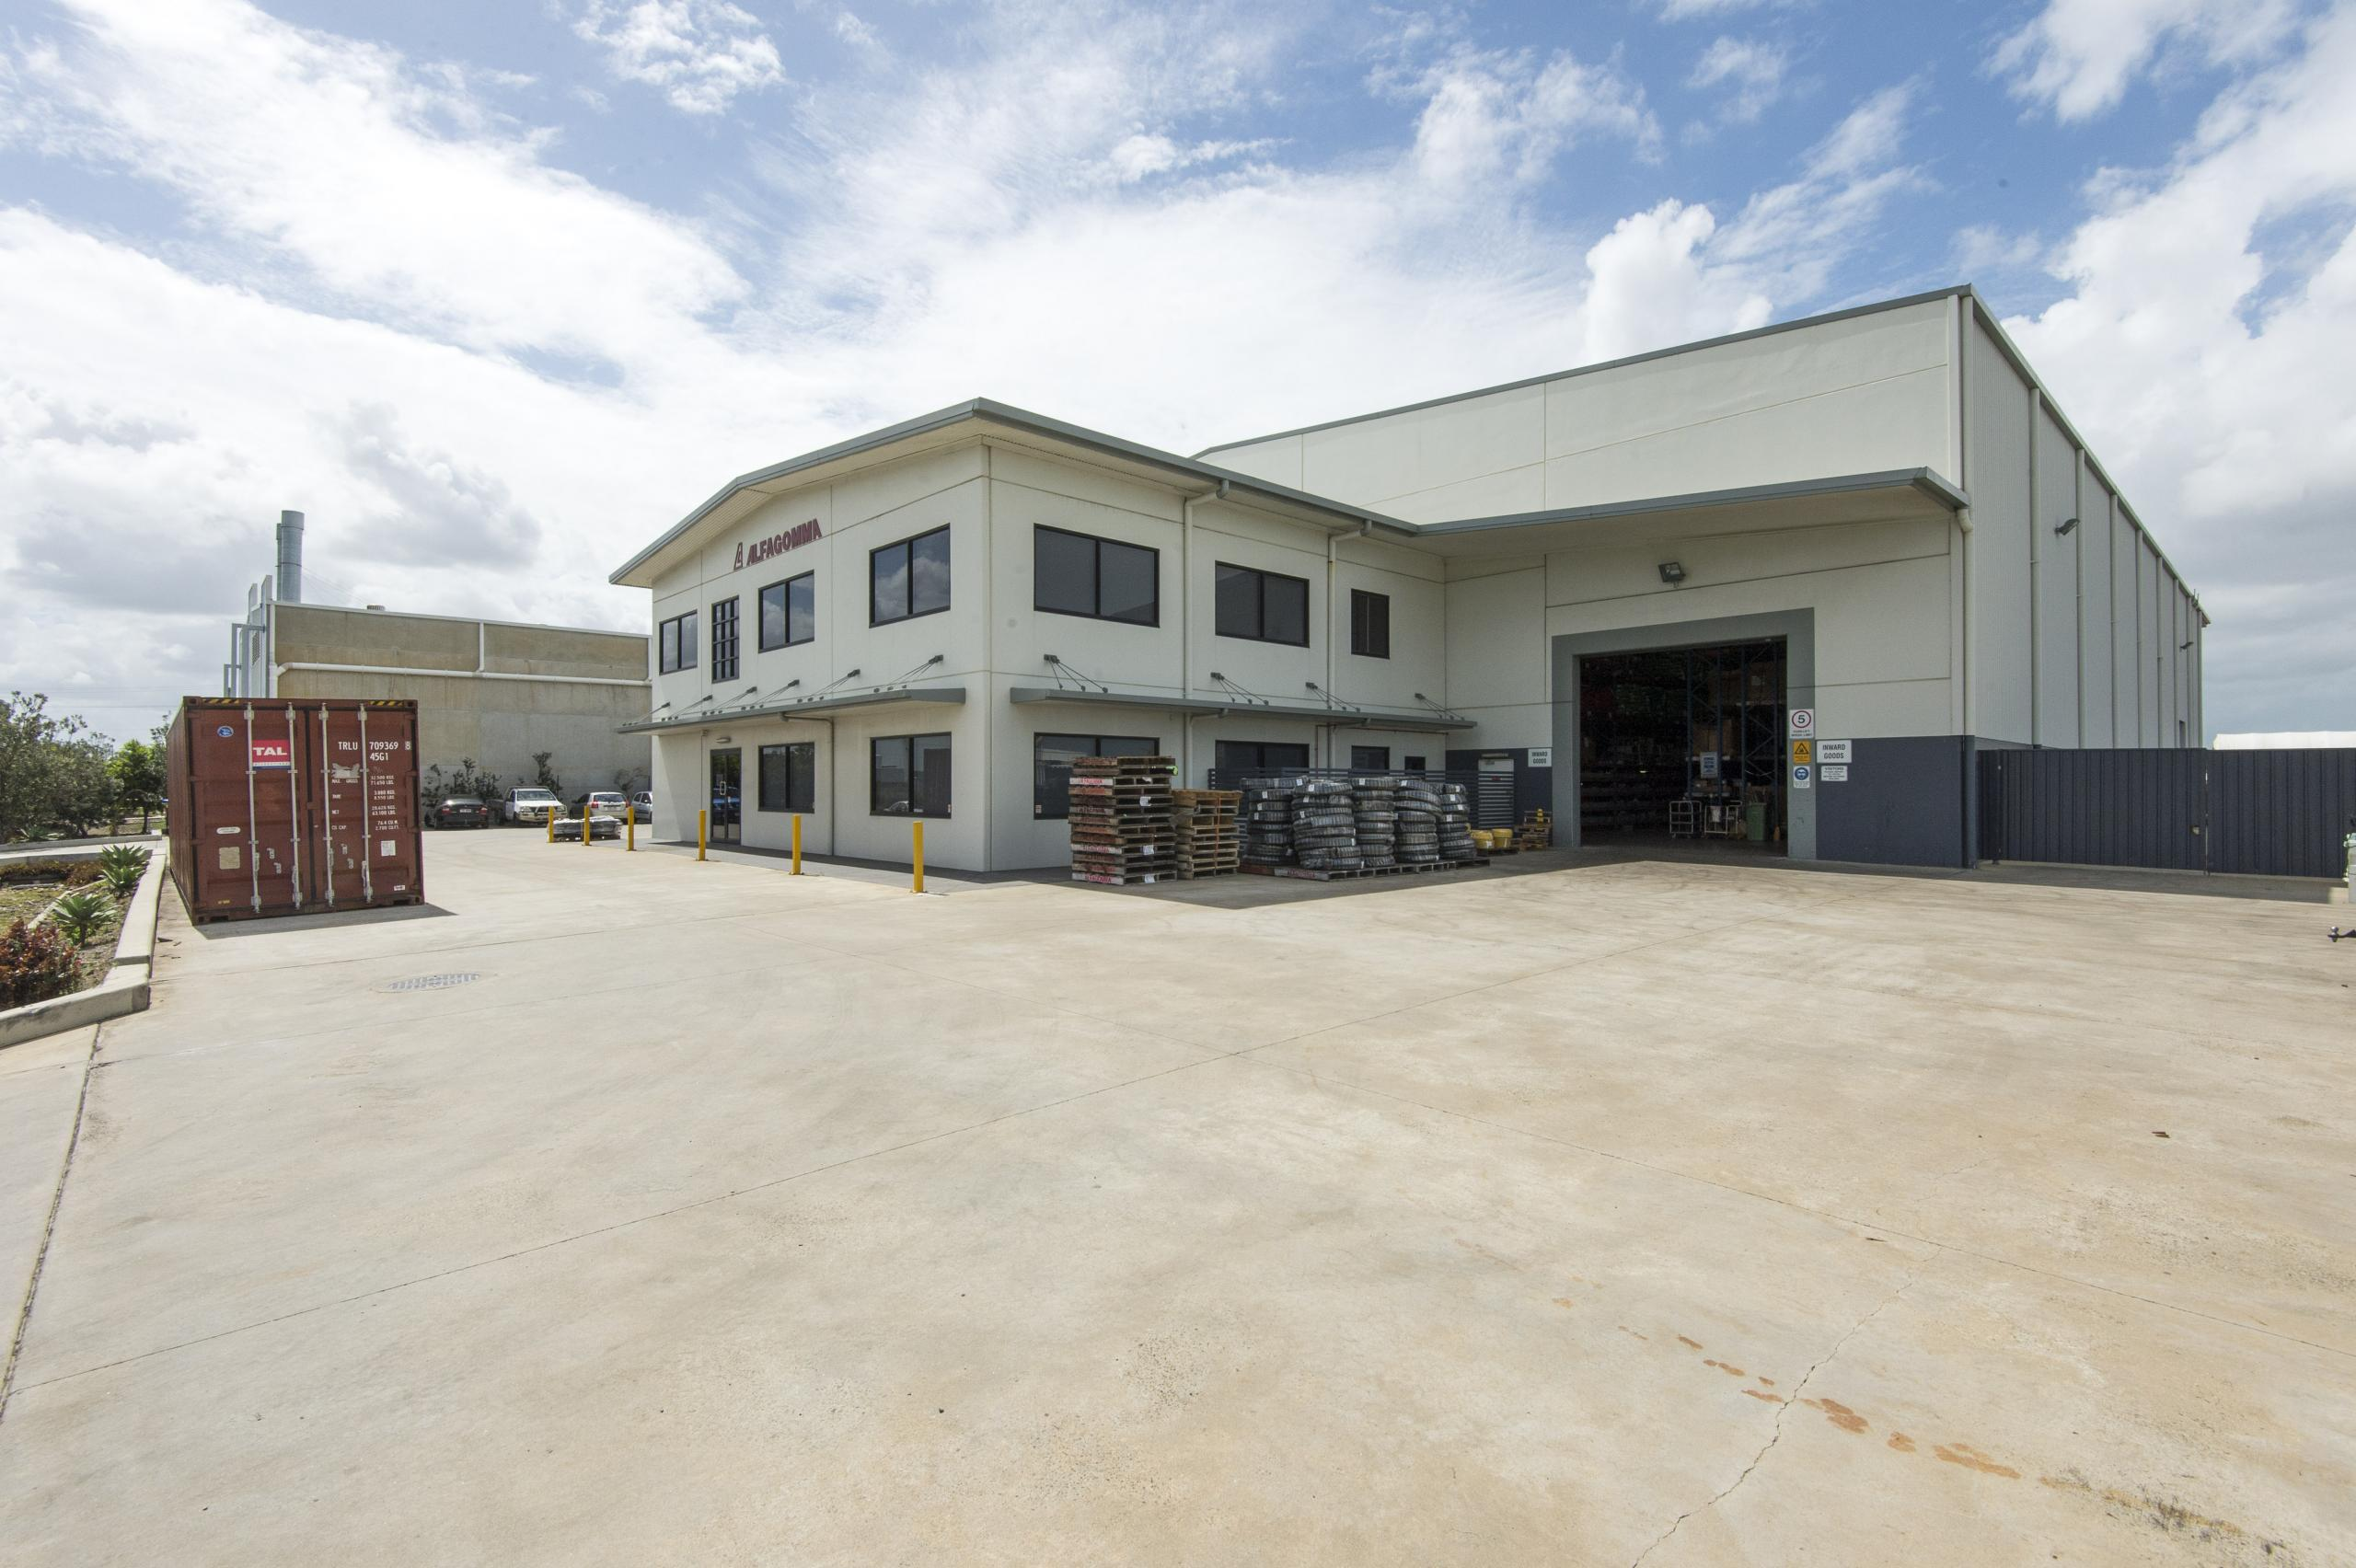 Crichtons Rd, Mackay, QLD | Trilogy Funds